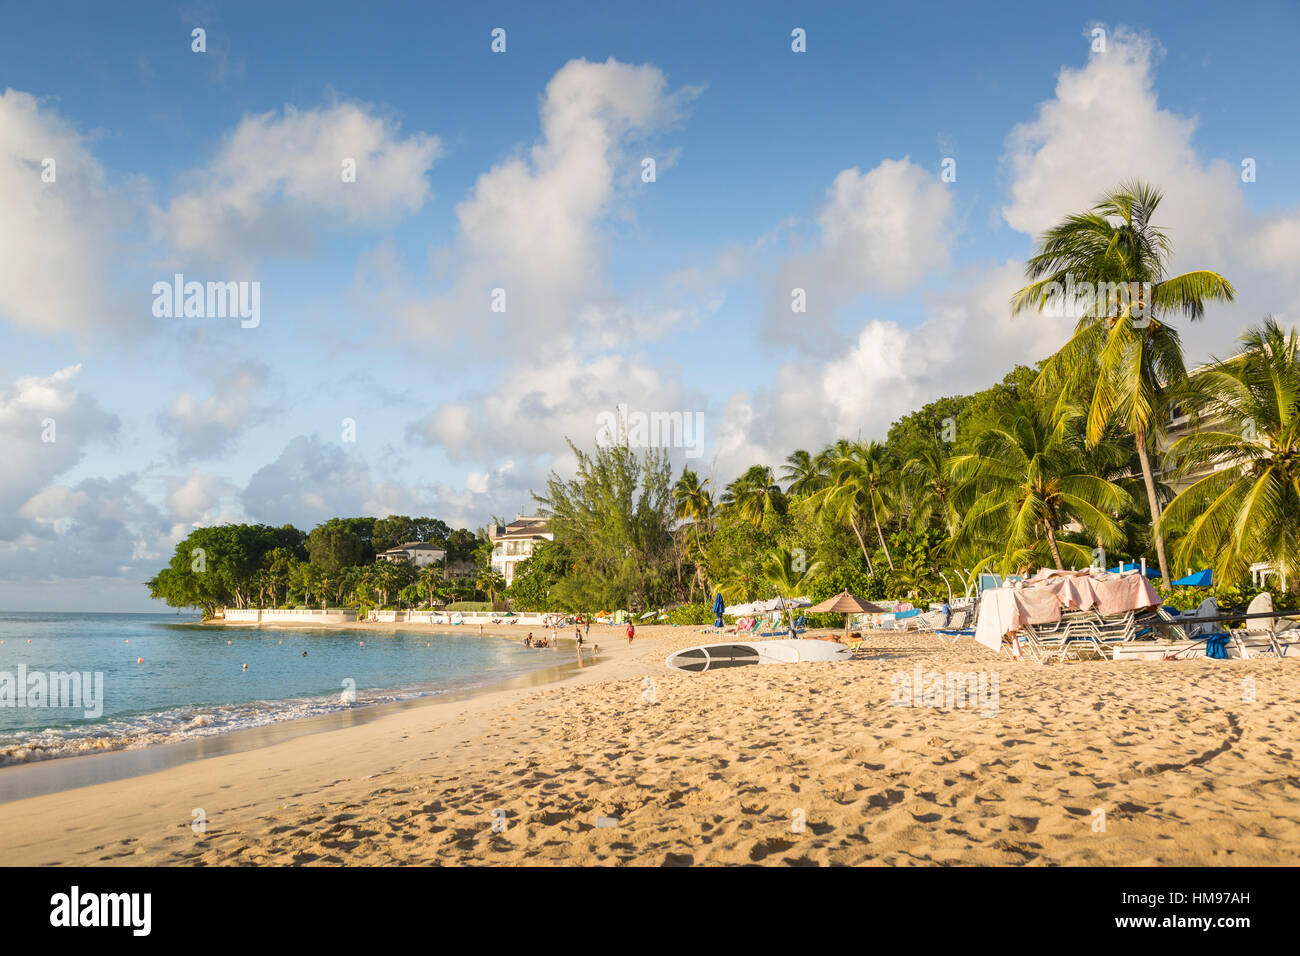 Smugglers Cove Beach, Holetown, St. James, Barbados, West Indies, dei Caraibi e America centrale Immagini Stock